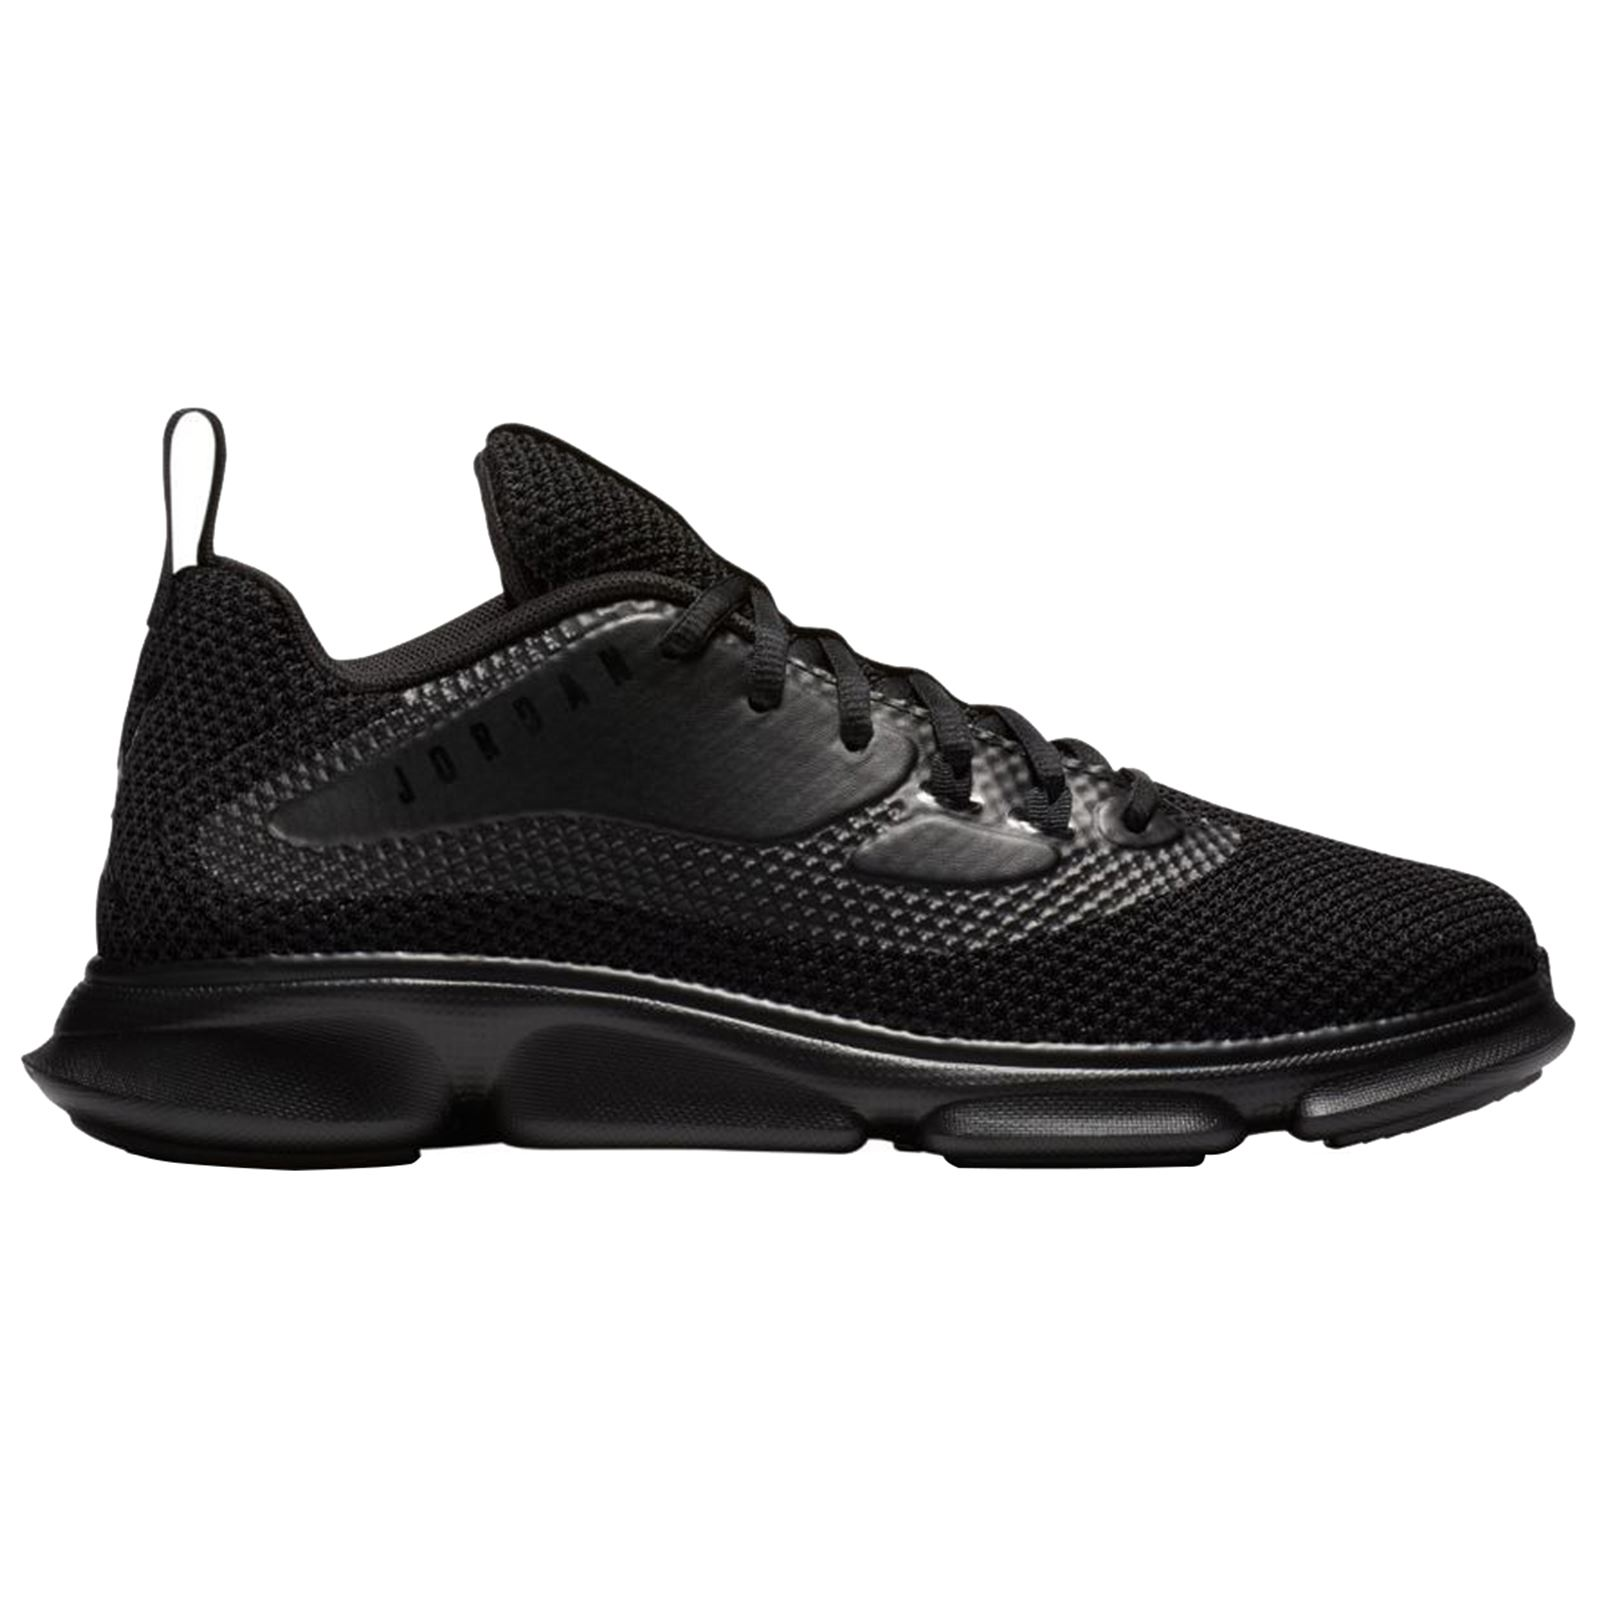 85fa4bf2c6519 Details about Nike Jordan Impact Training Black Mens Mesh Lace-up Trainers